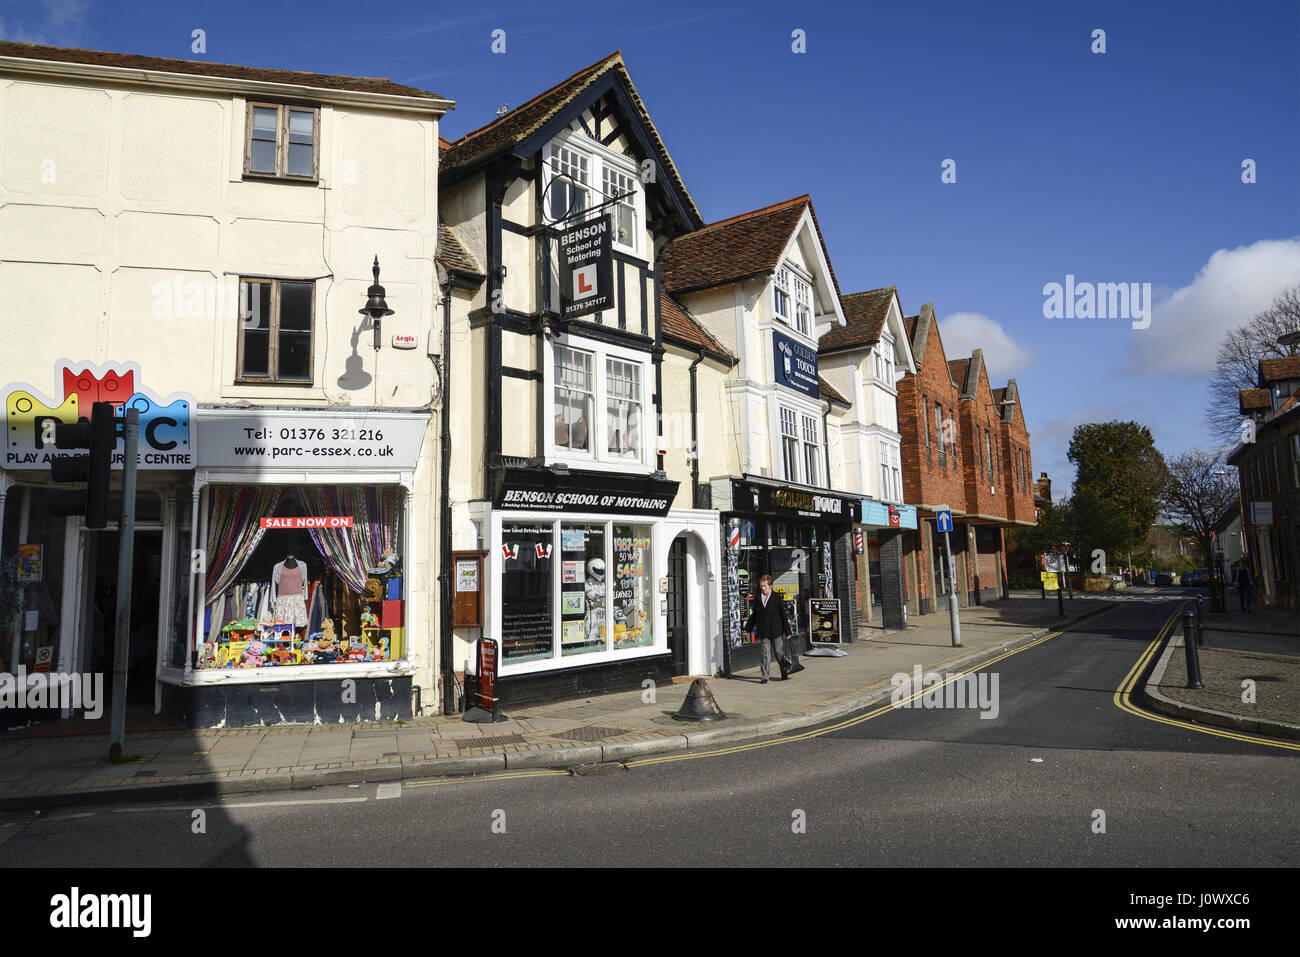 Junction of Bocking End and Bank Street, Braintree, Essex - Stock Image